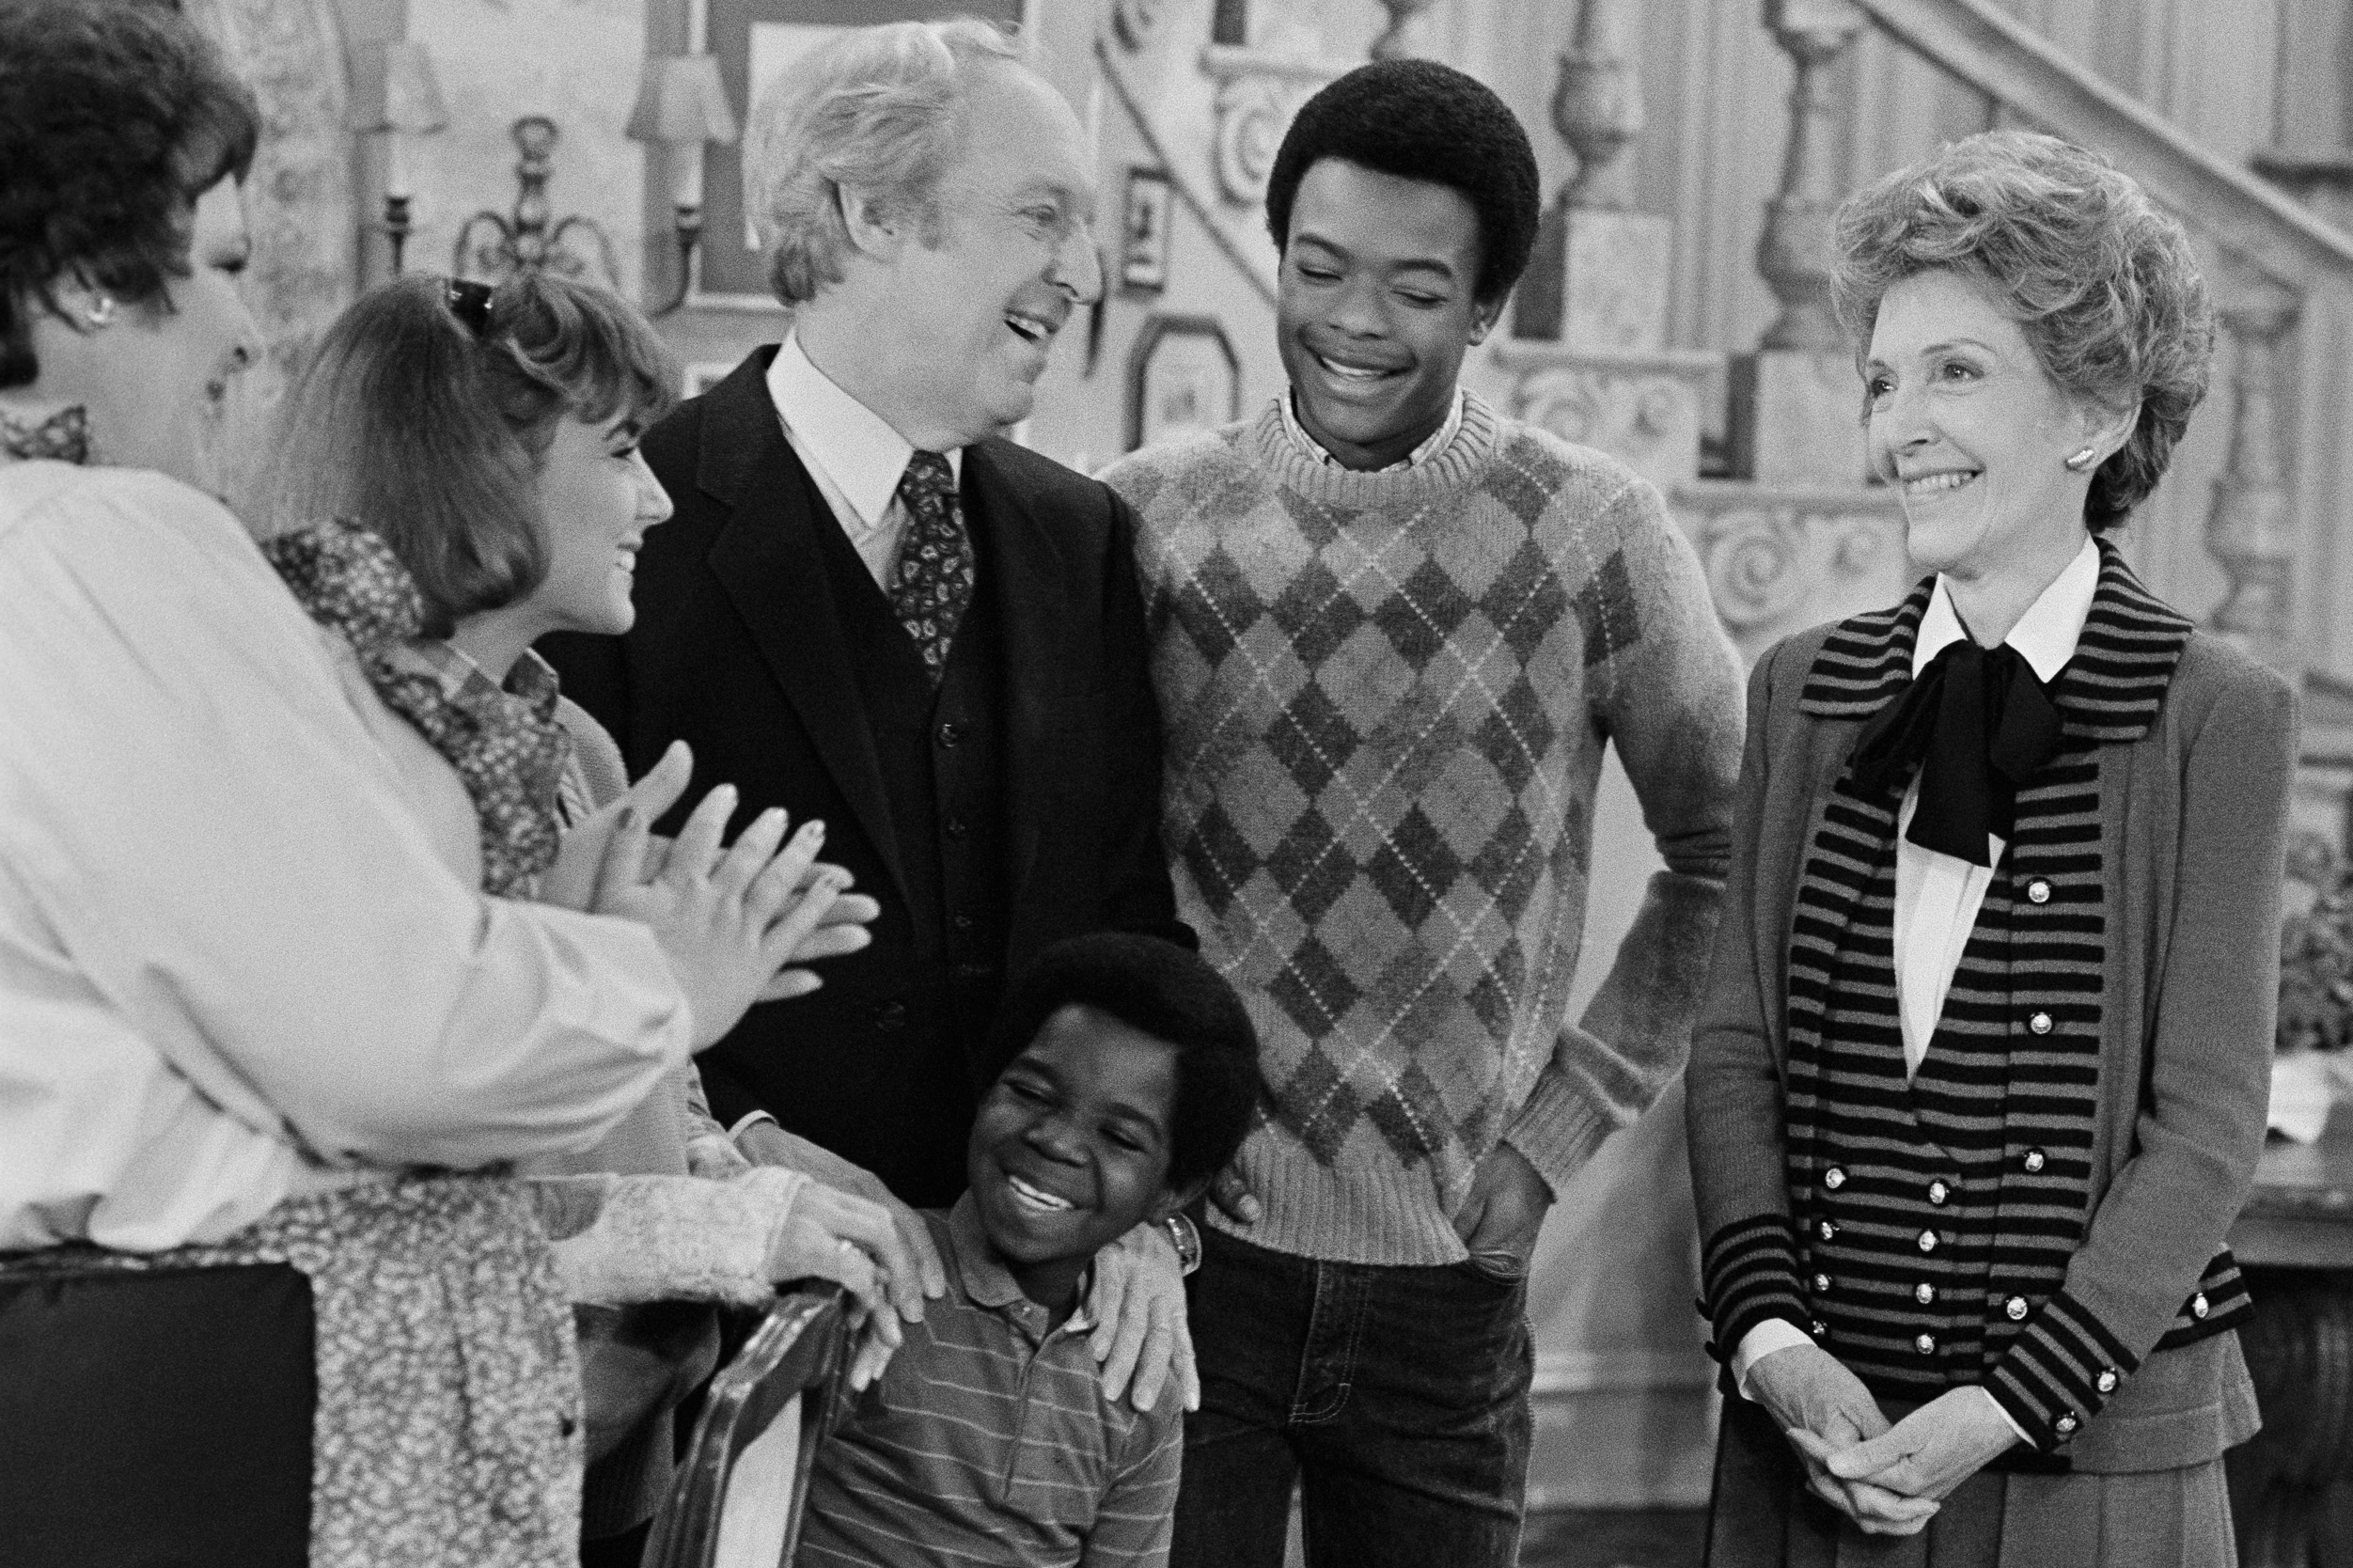 Former first lady Nancy Reagan, right, on Diff'rent Strokes, 1983.